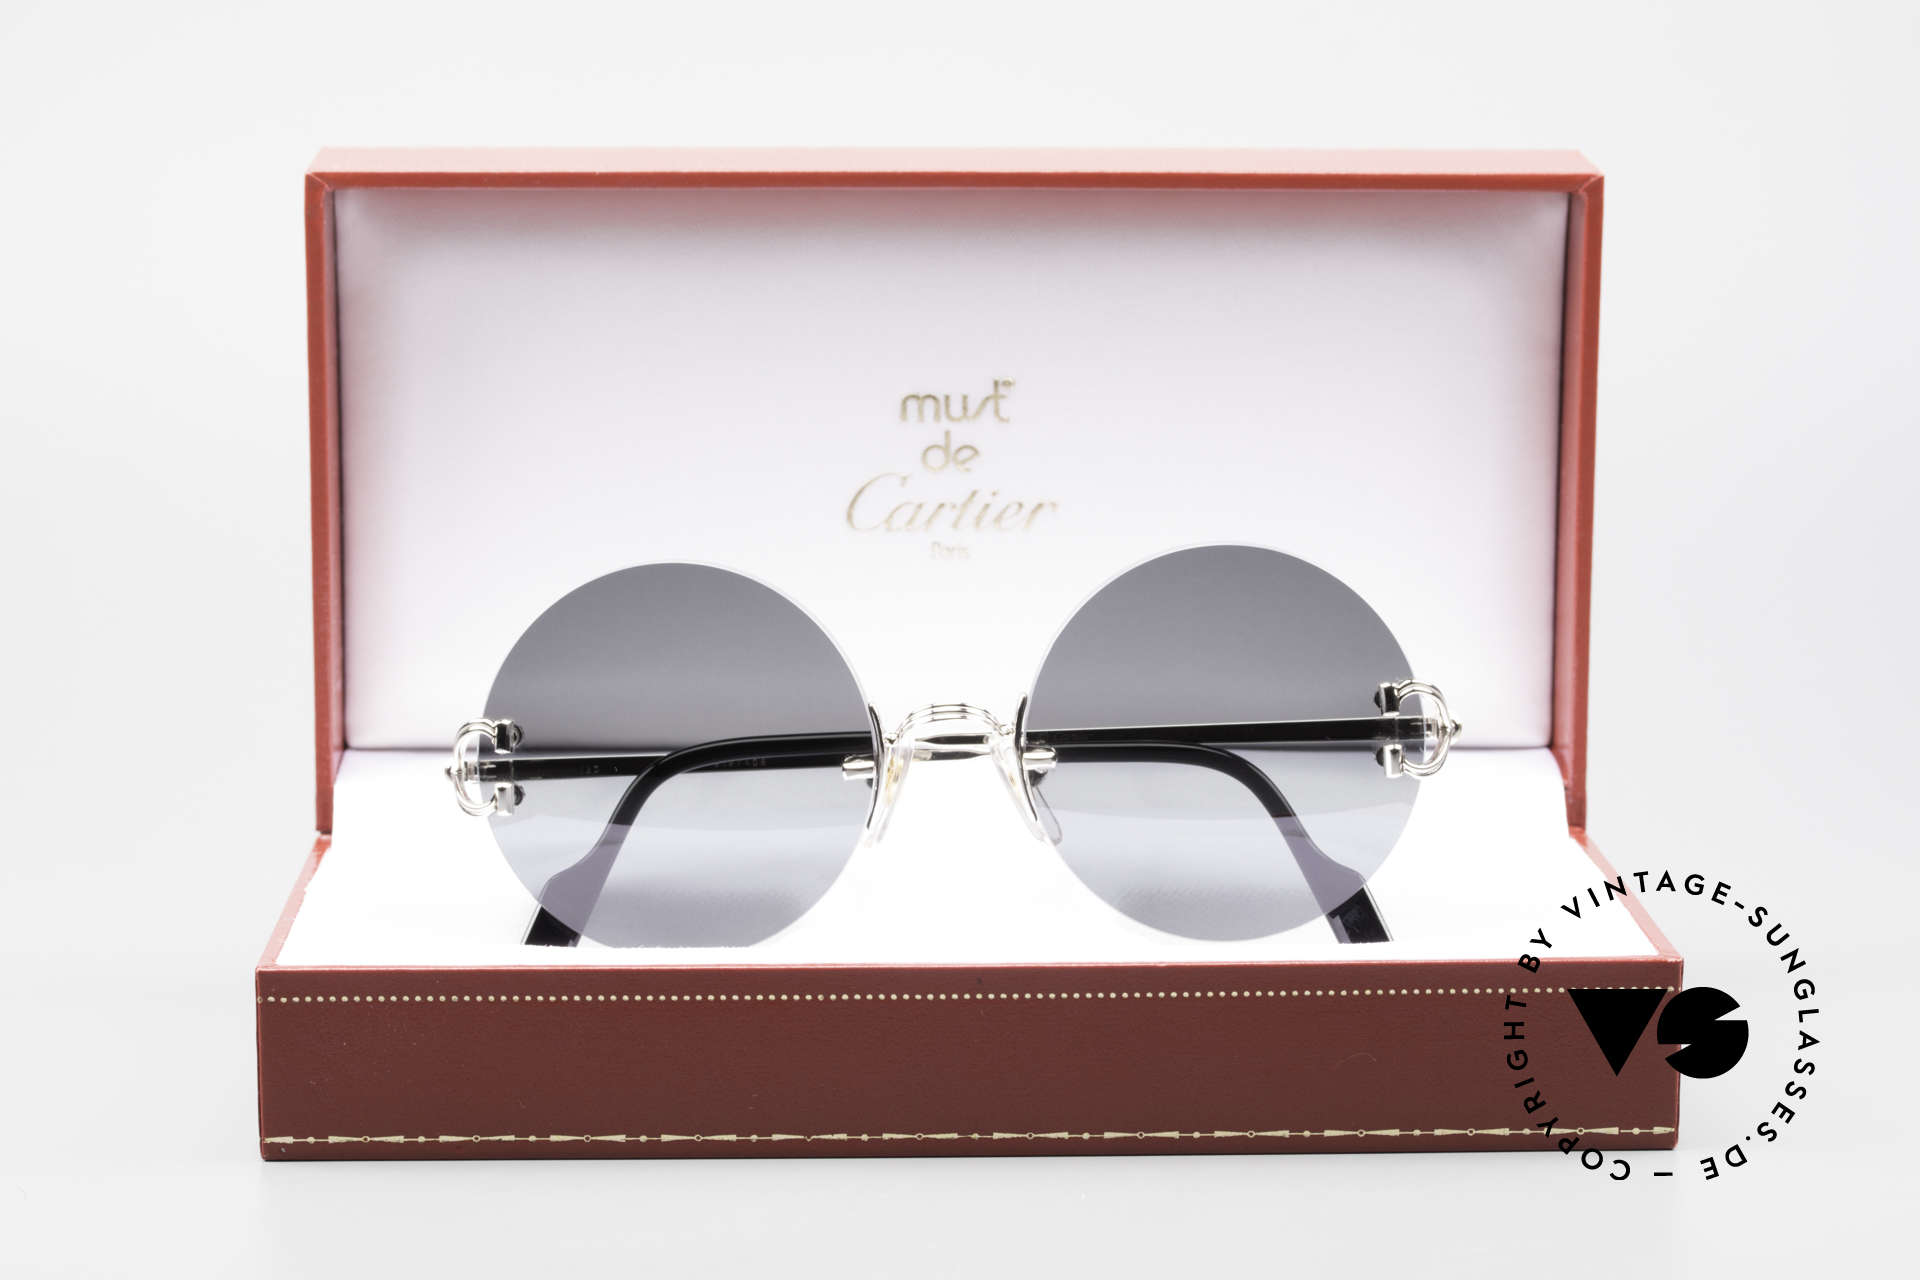 Cartier Madison Small Round Rimless Shades, Size: small, Made for Men and Women